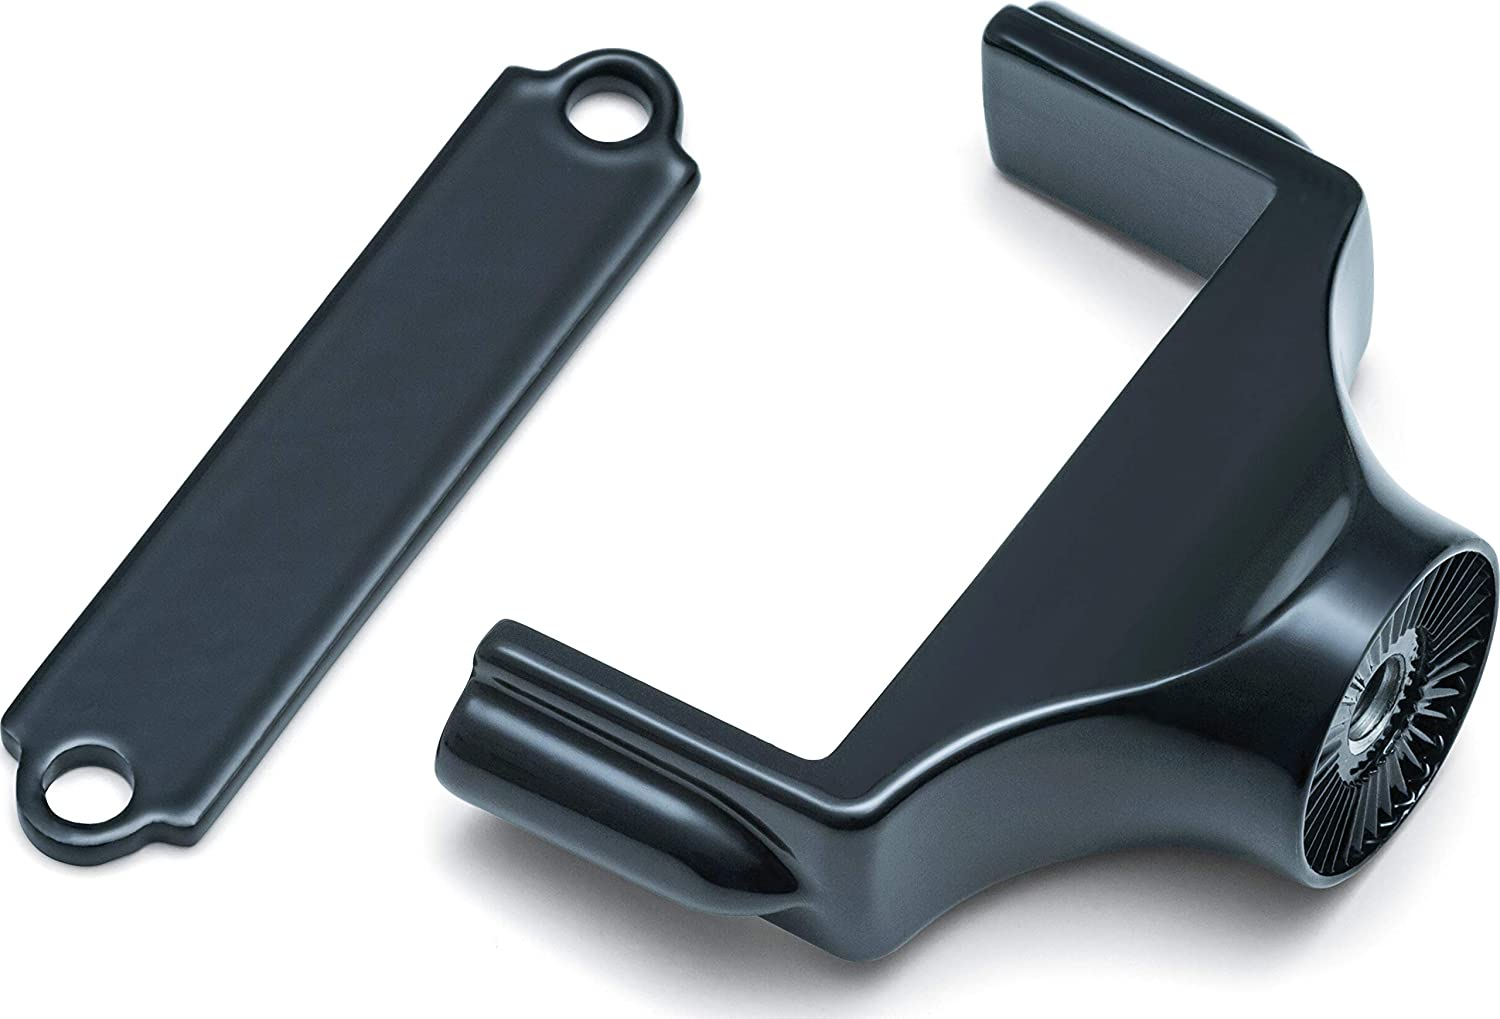 Gloss Black Kuryakyn 3195 Motorcycle Accessory Side Mount License Plate Holder Clamp for 2015-19 Harley-Davidson Street 500 /& 750 Motorcycles